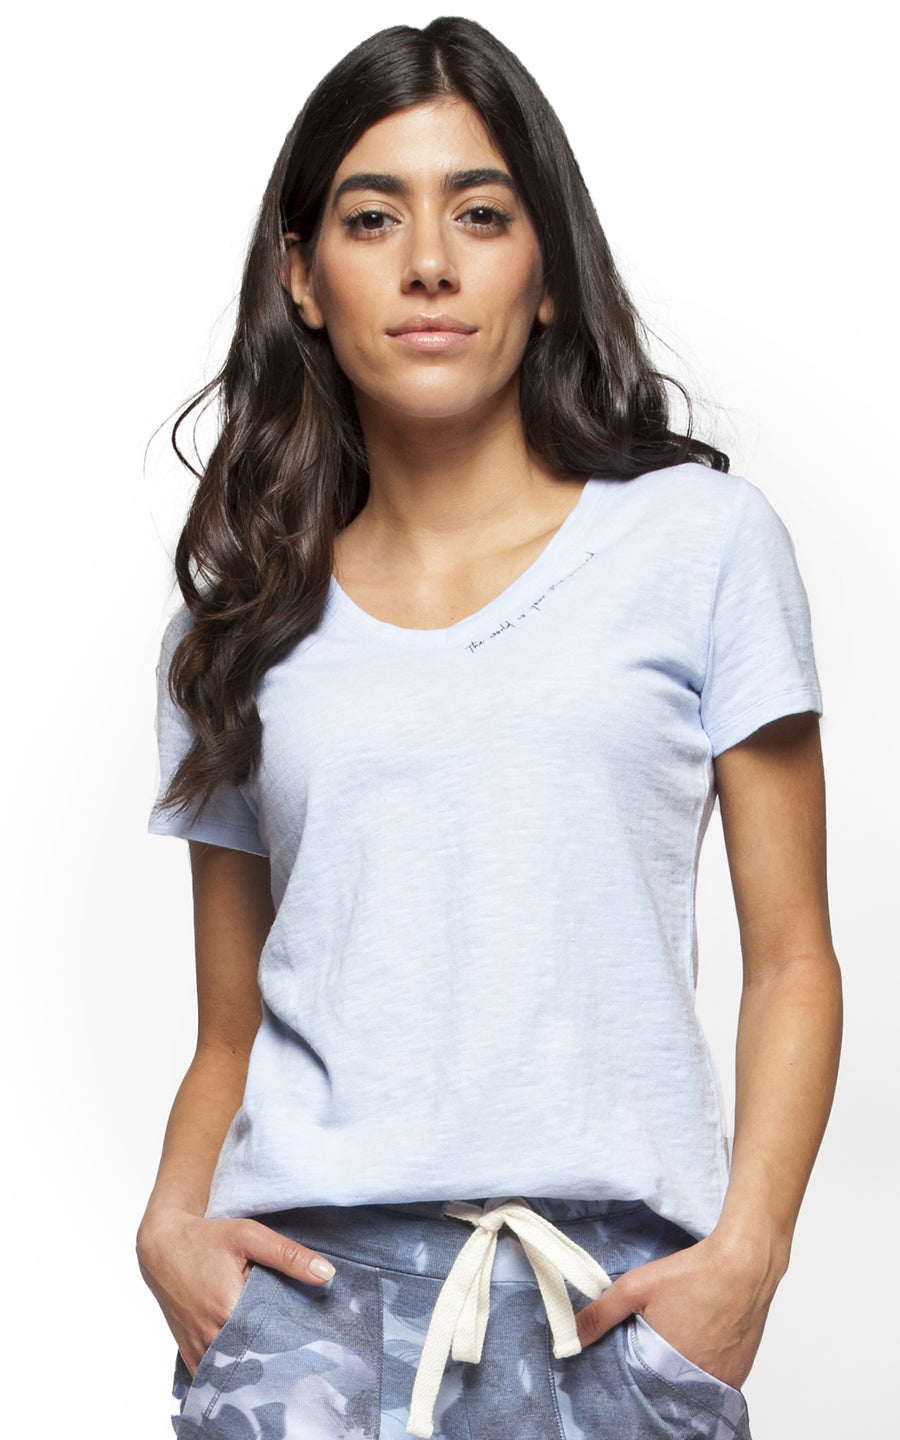 detail of v-neck tee shirt with graphic printed along neckline